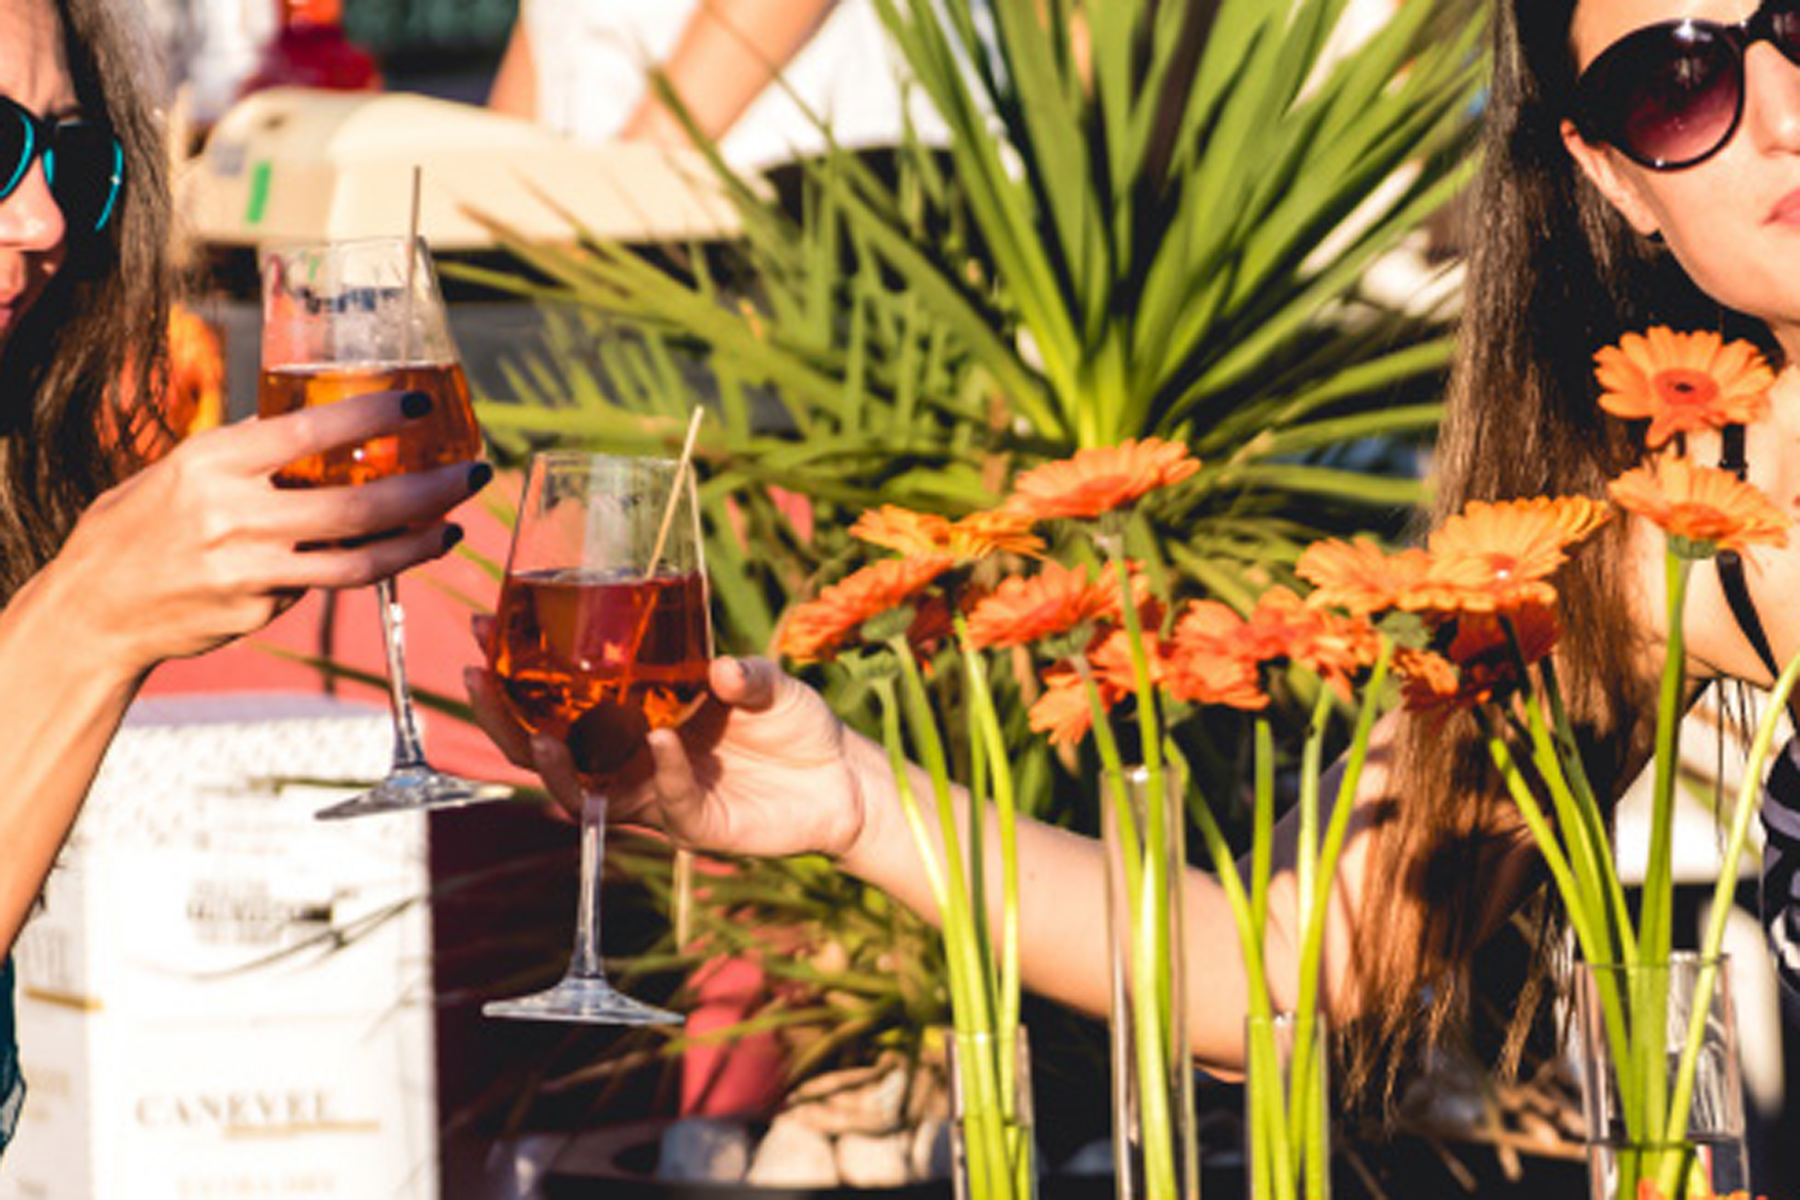 Spritz and Flowers a Jesolo Lido